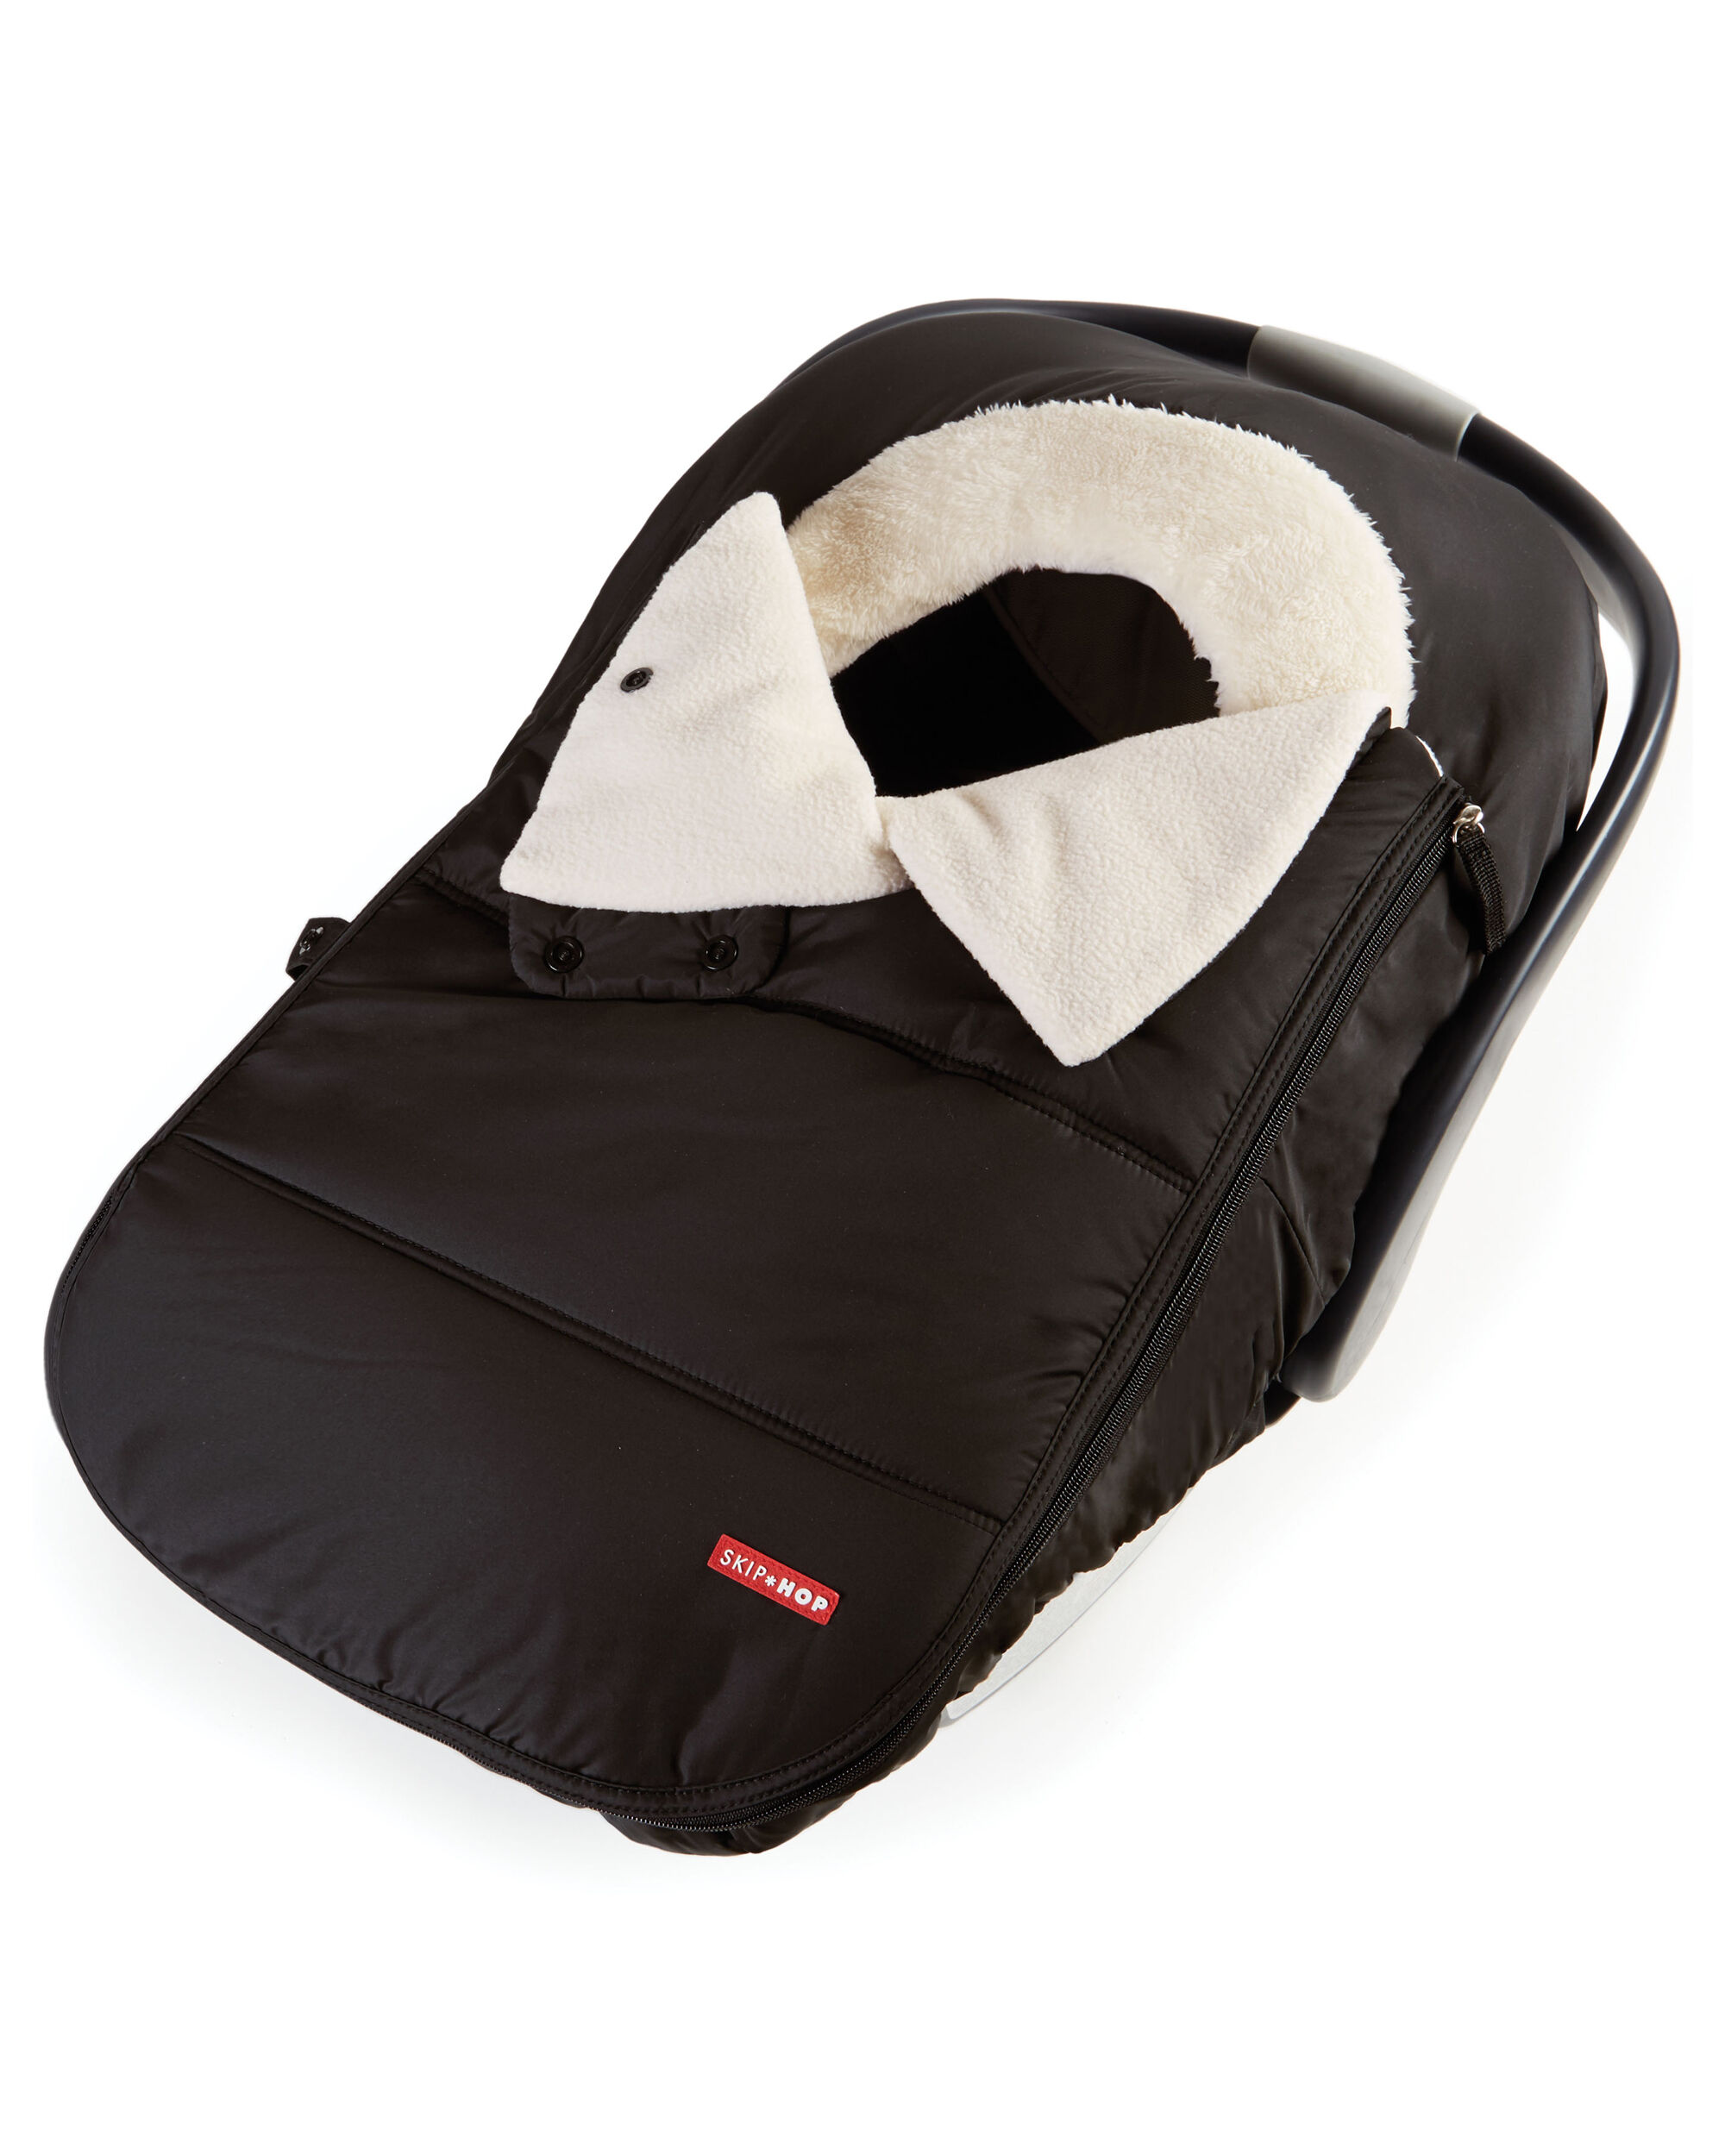 STROLL GO Car Seat Cover